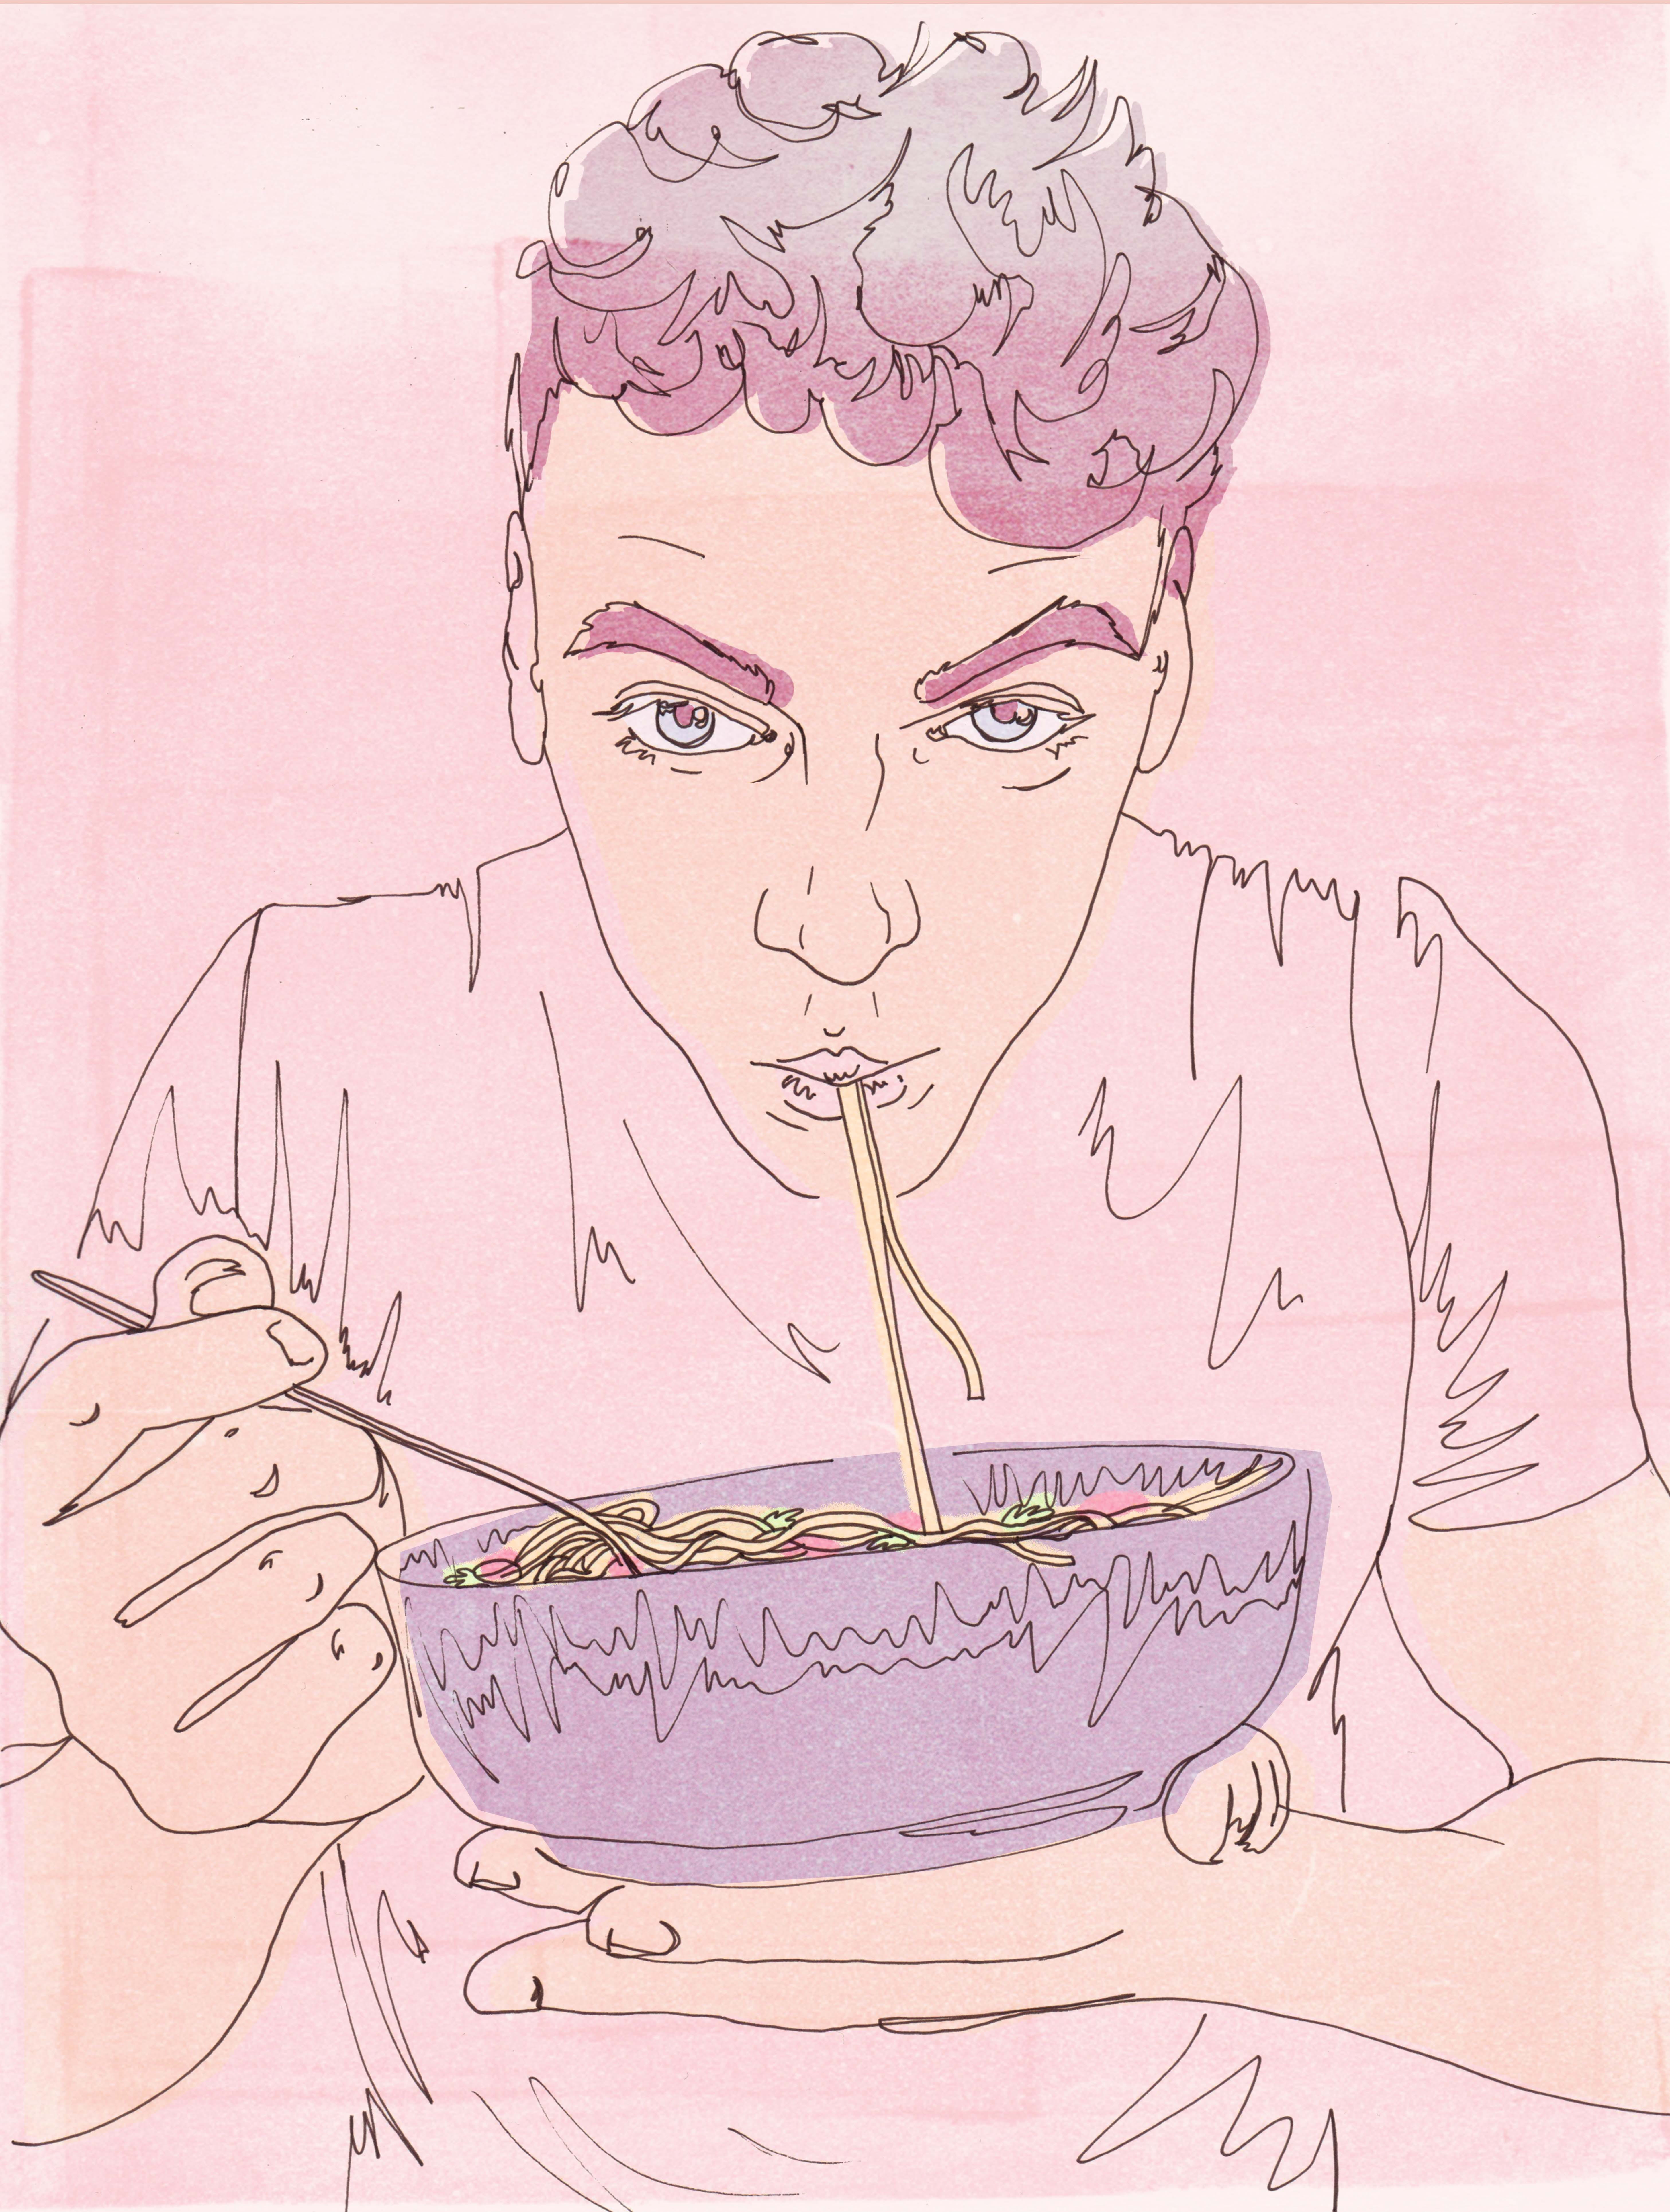 Illustration, a young man eating spaghetti from a bowl.